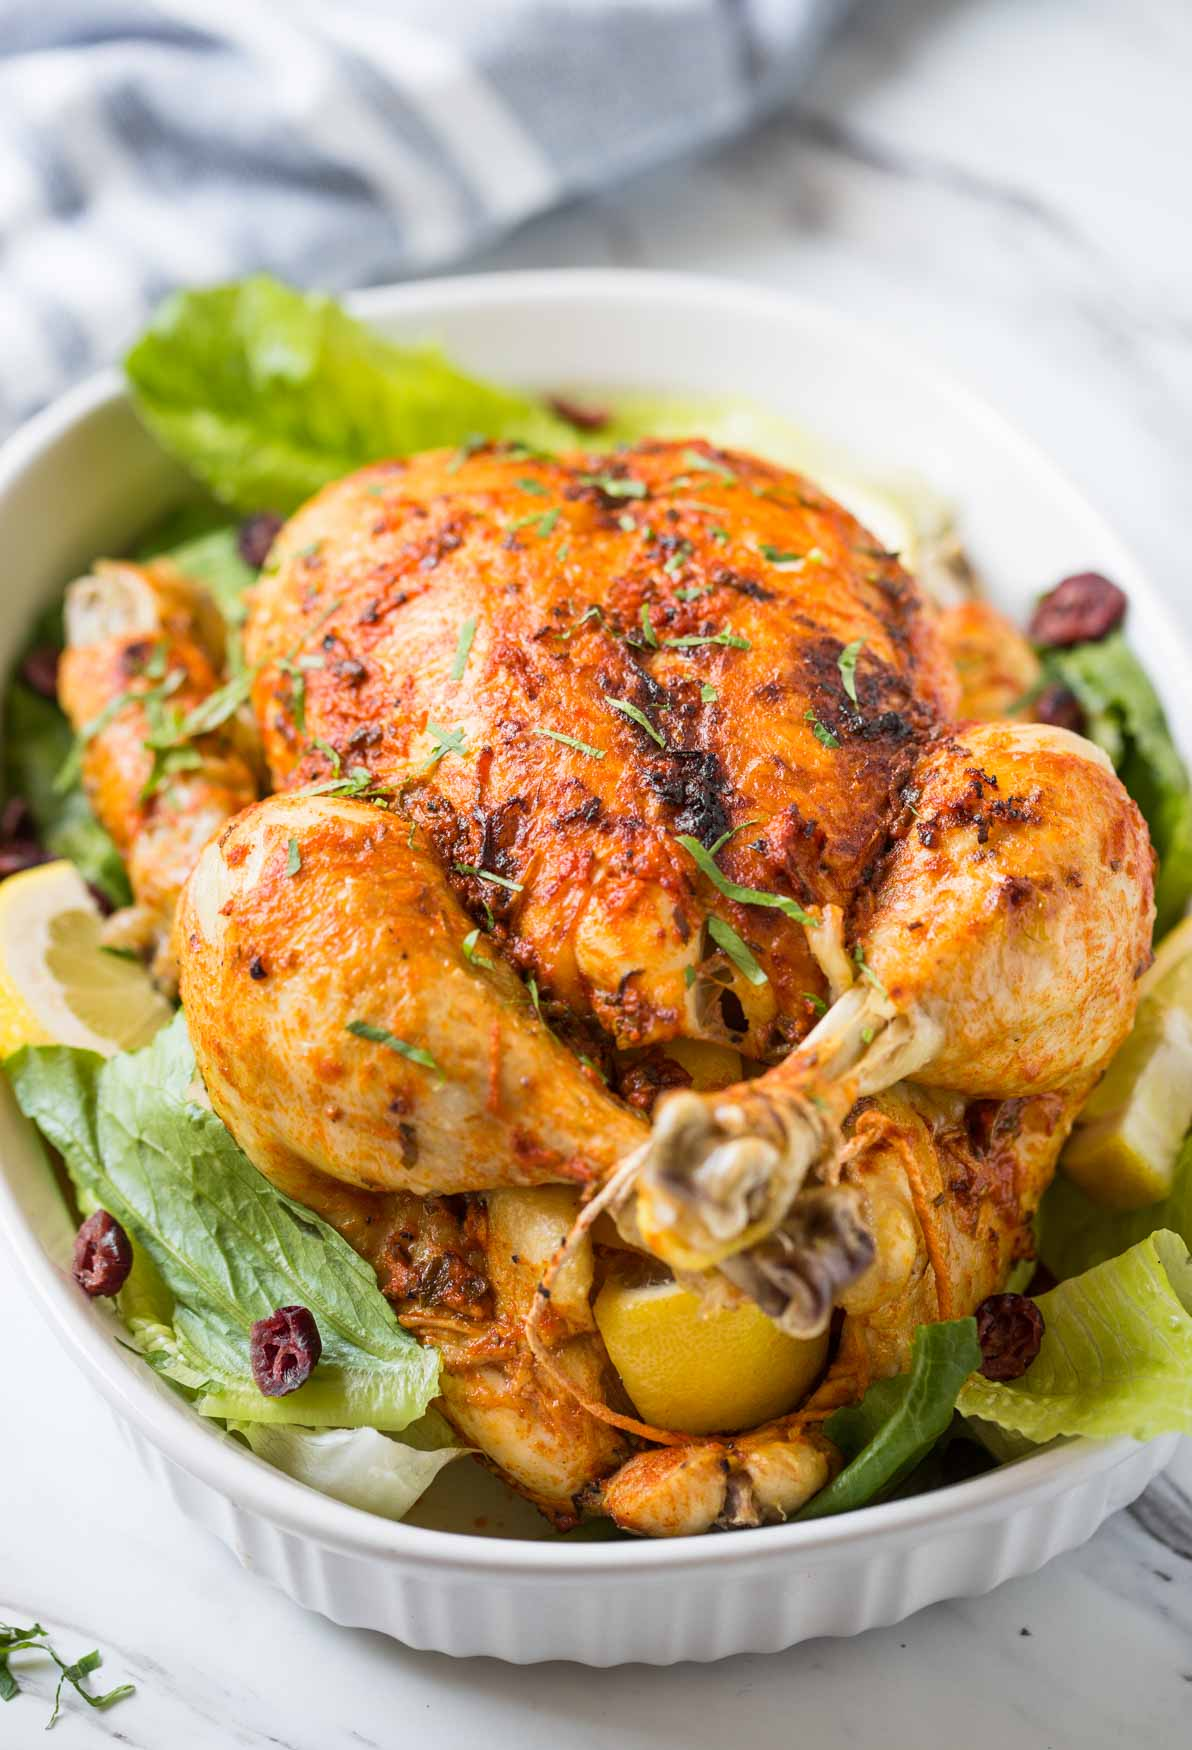 A whole chicken with juicy and tender on the inside and a crispy crust on the outside which you can make in the Instant Pot. And this easy and healthy whole chicken recipe with delicious gravy is perfect for family gatherings or holiday dinner or party. #watchwhatueat #chicken #thanksgivingrecipe #healthythanksgiving #instantpotchicken